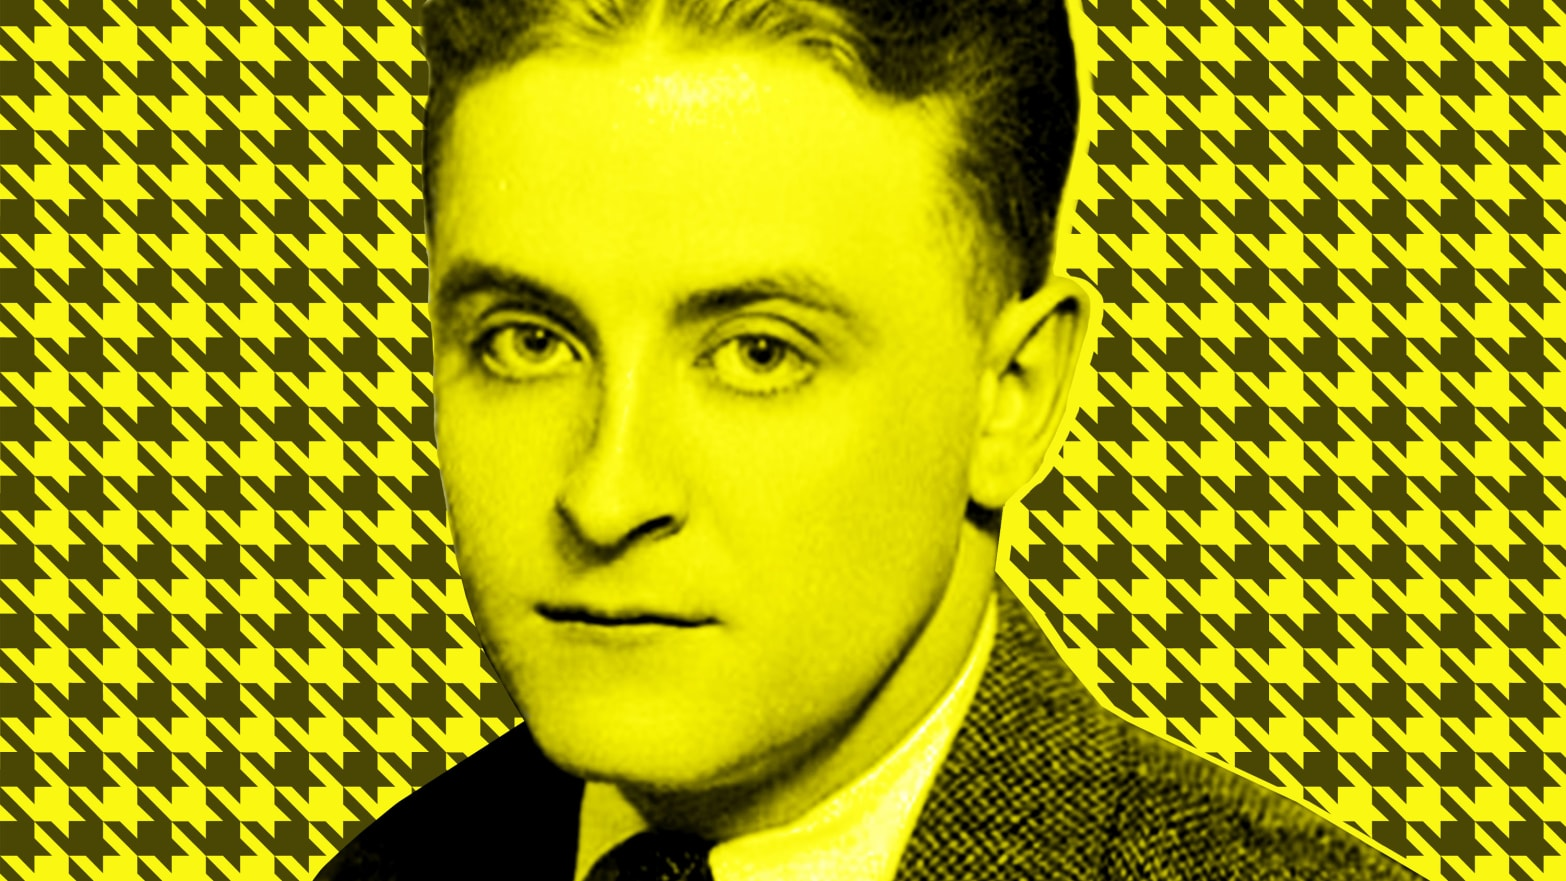 'The Great Gatsby' Is Good, but F. Scott Fitzgerald's Stories Like 'May Day' Are Even Better